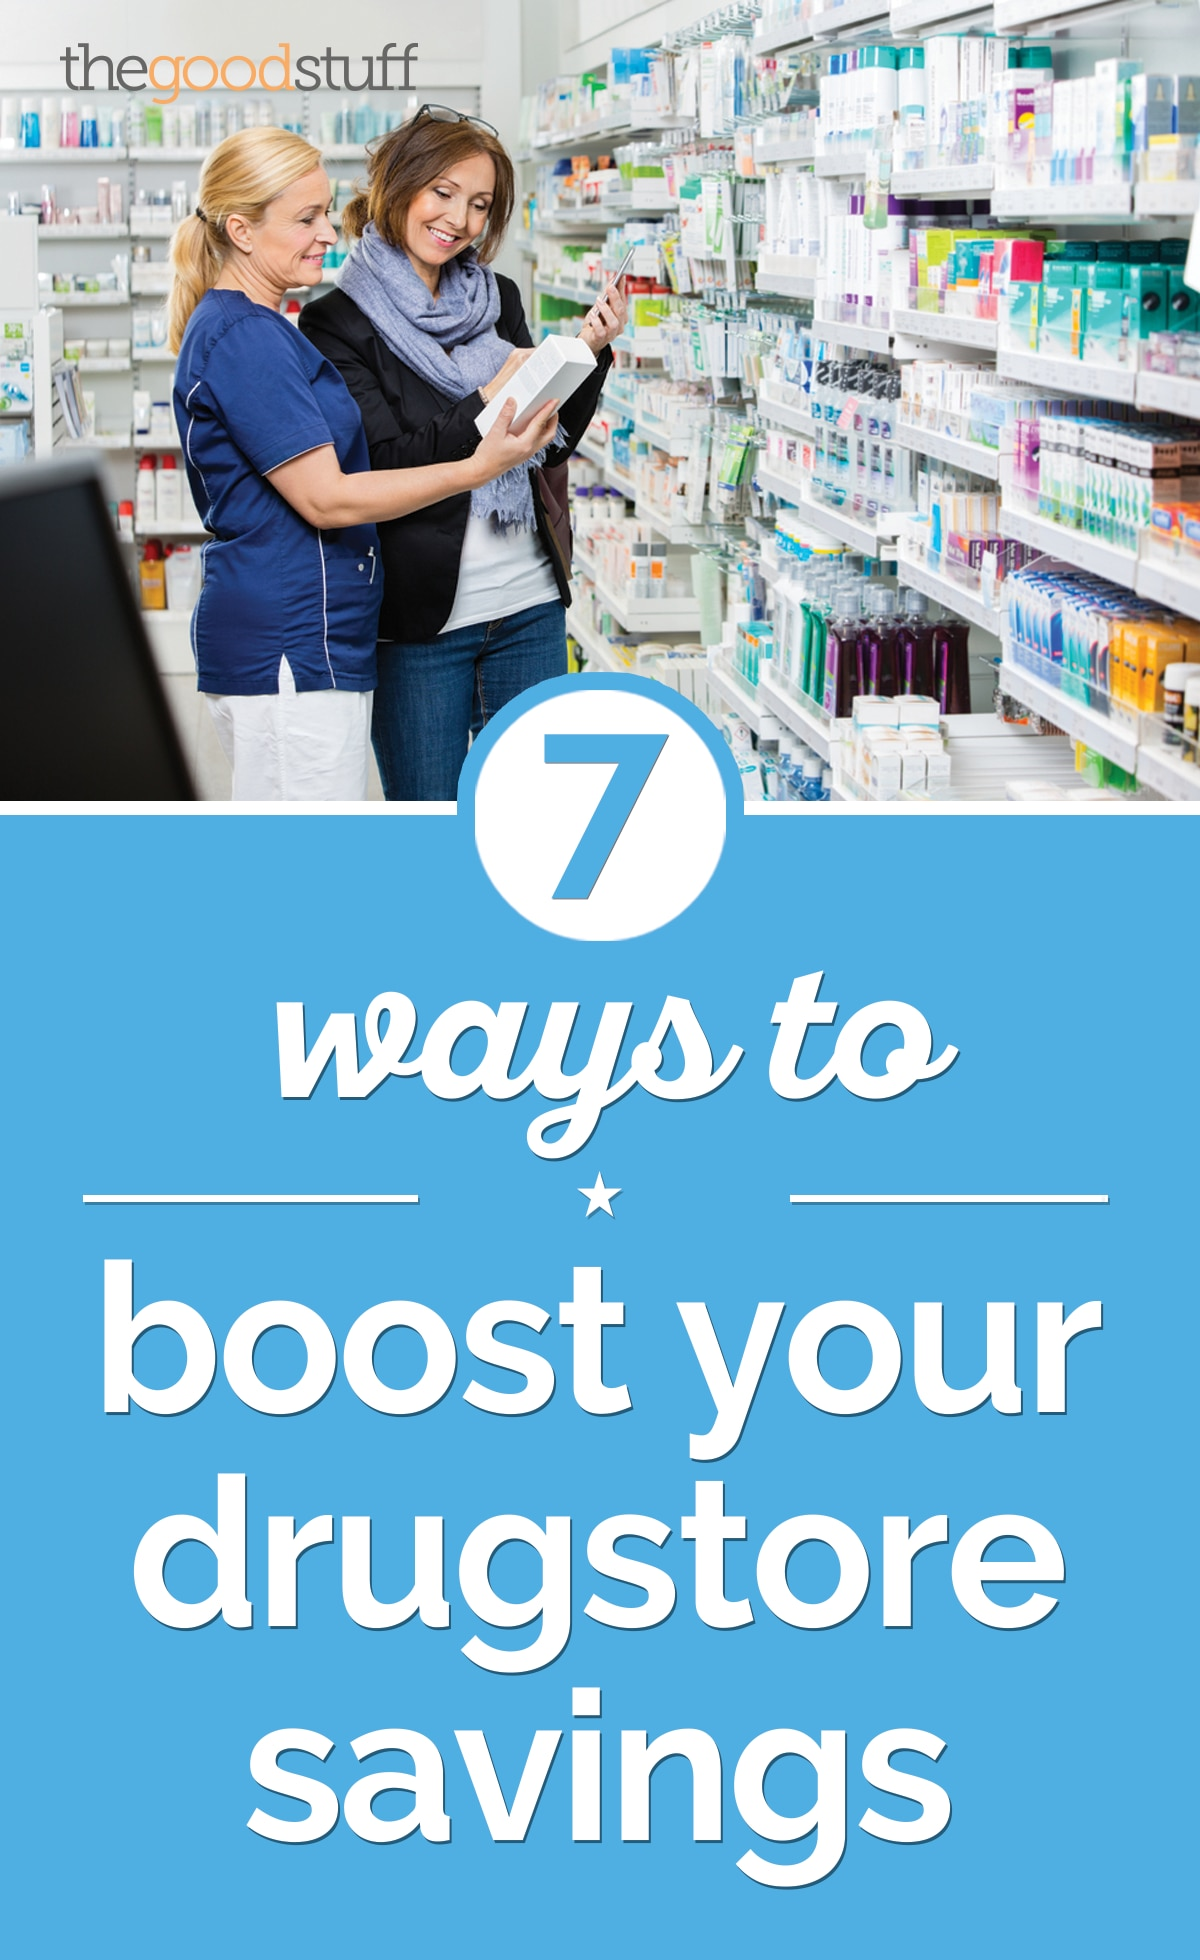 7 Ways to Boost Your Drugstore Savings